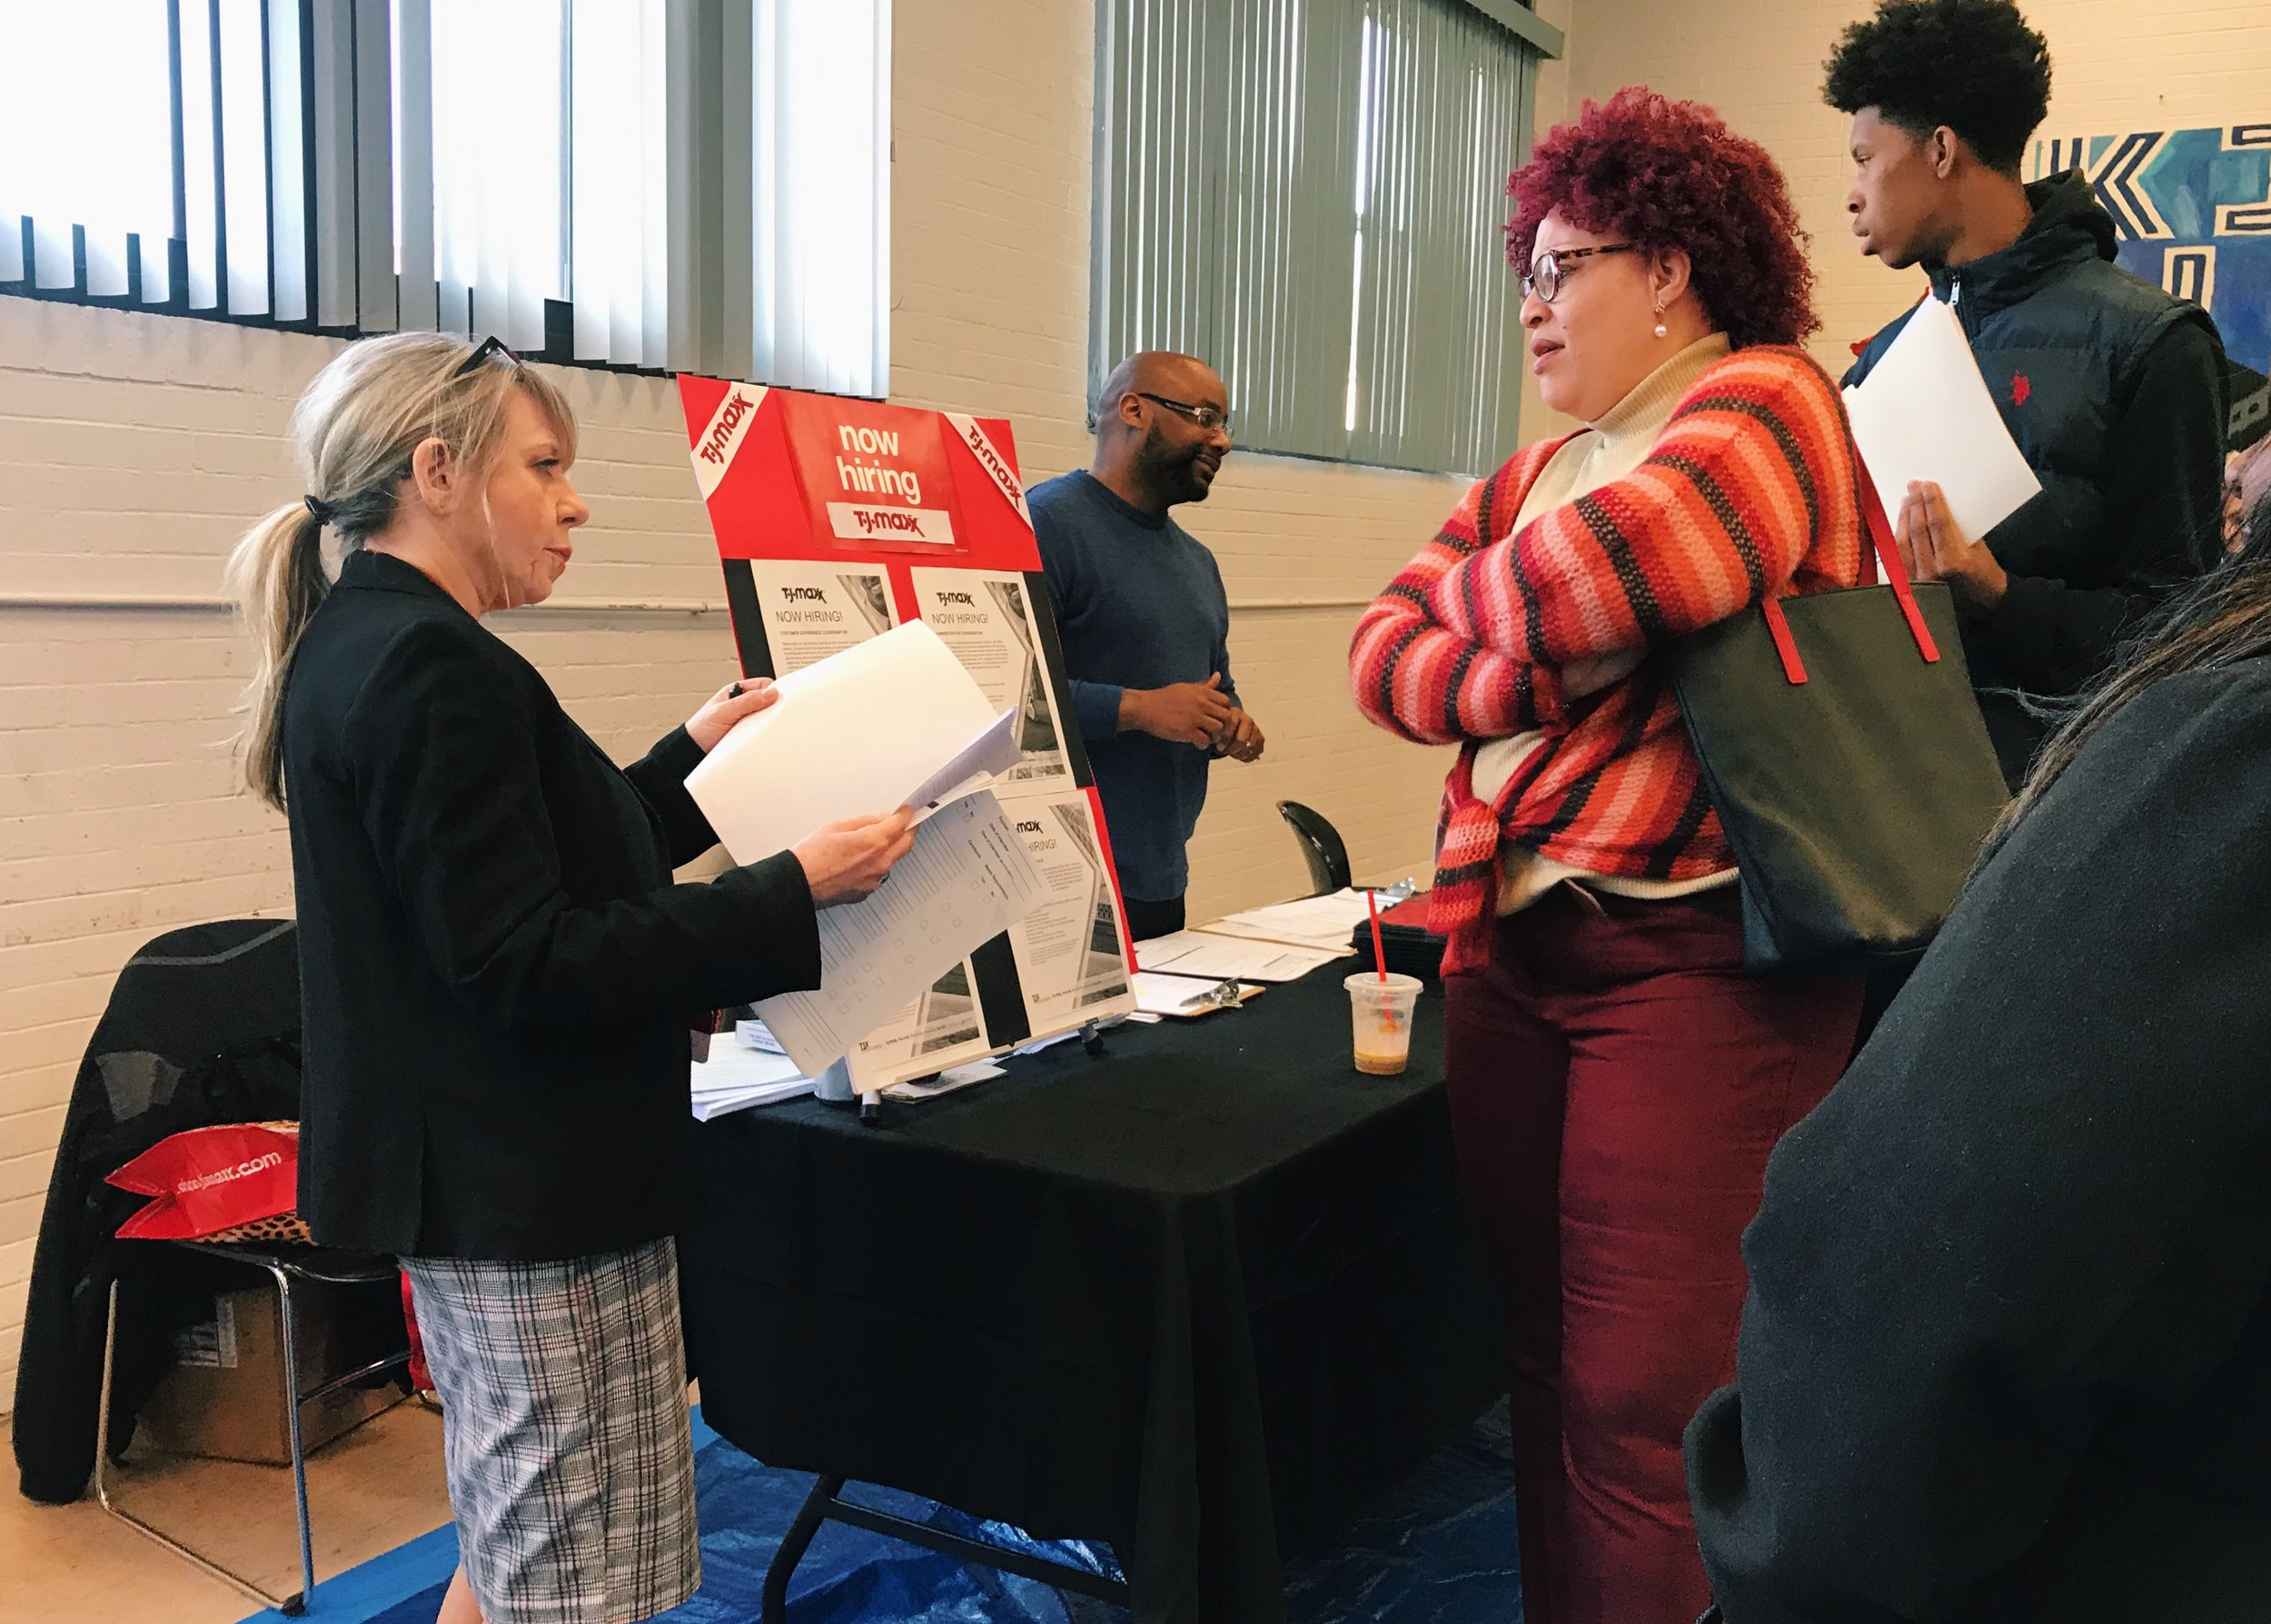 TJ Maxx was one of the event's most popular employers, with over 150 candidates filling out applications.